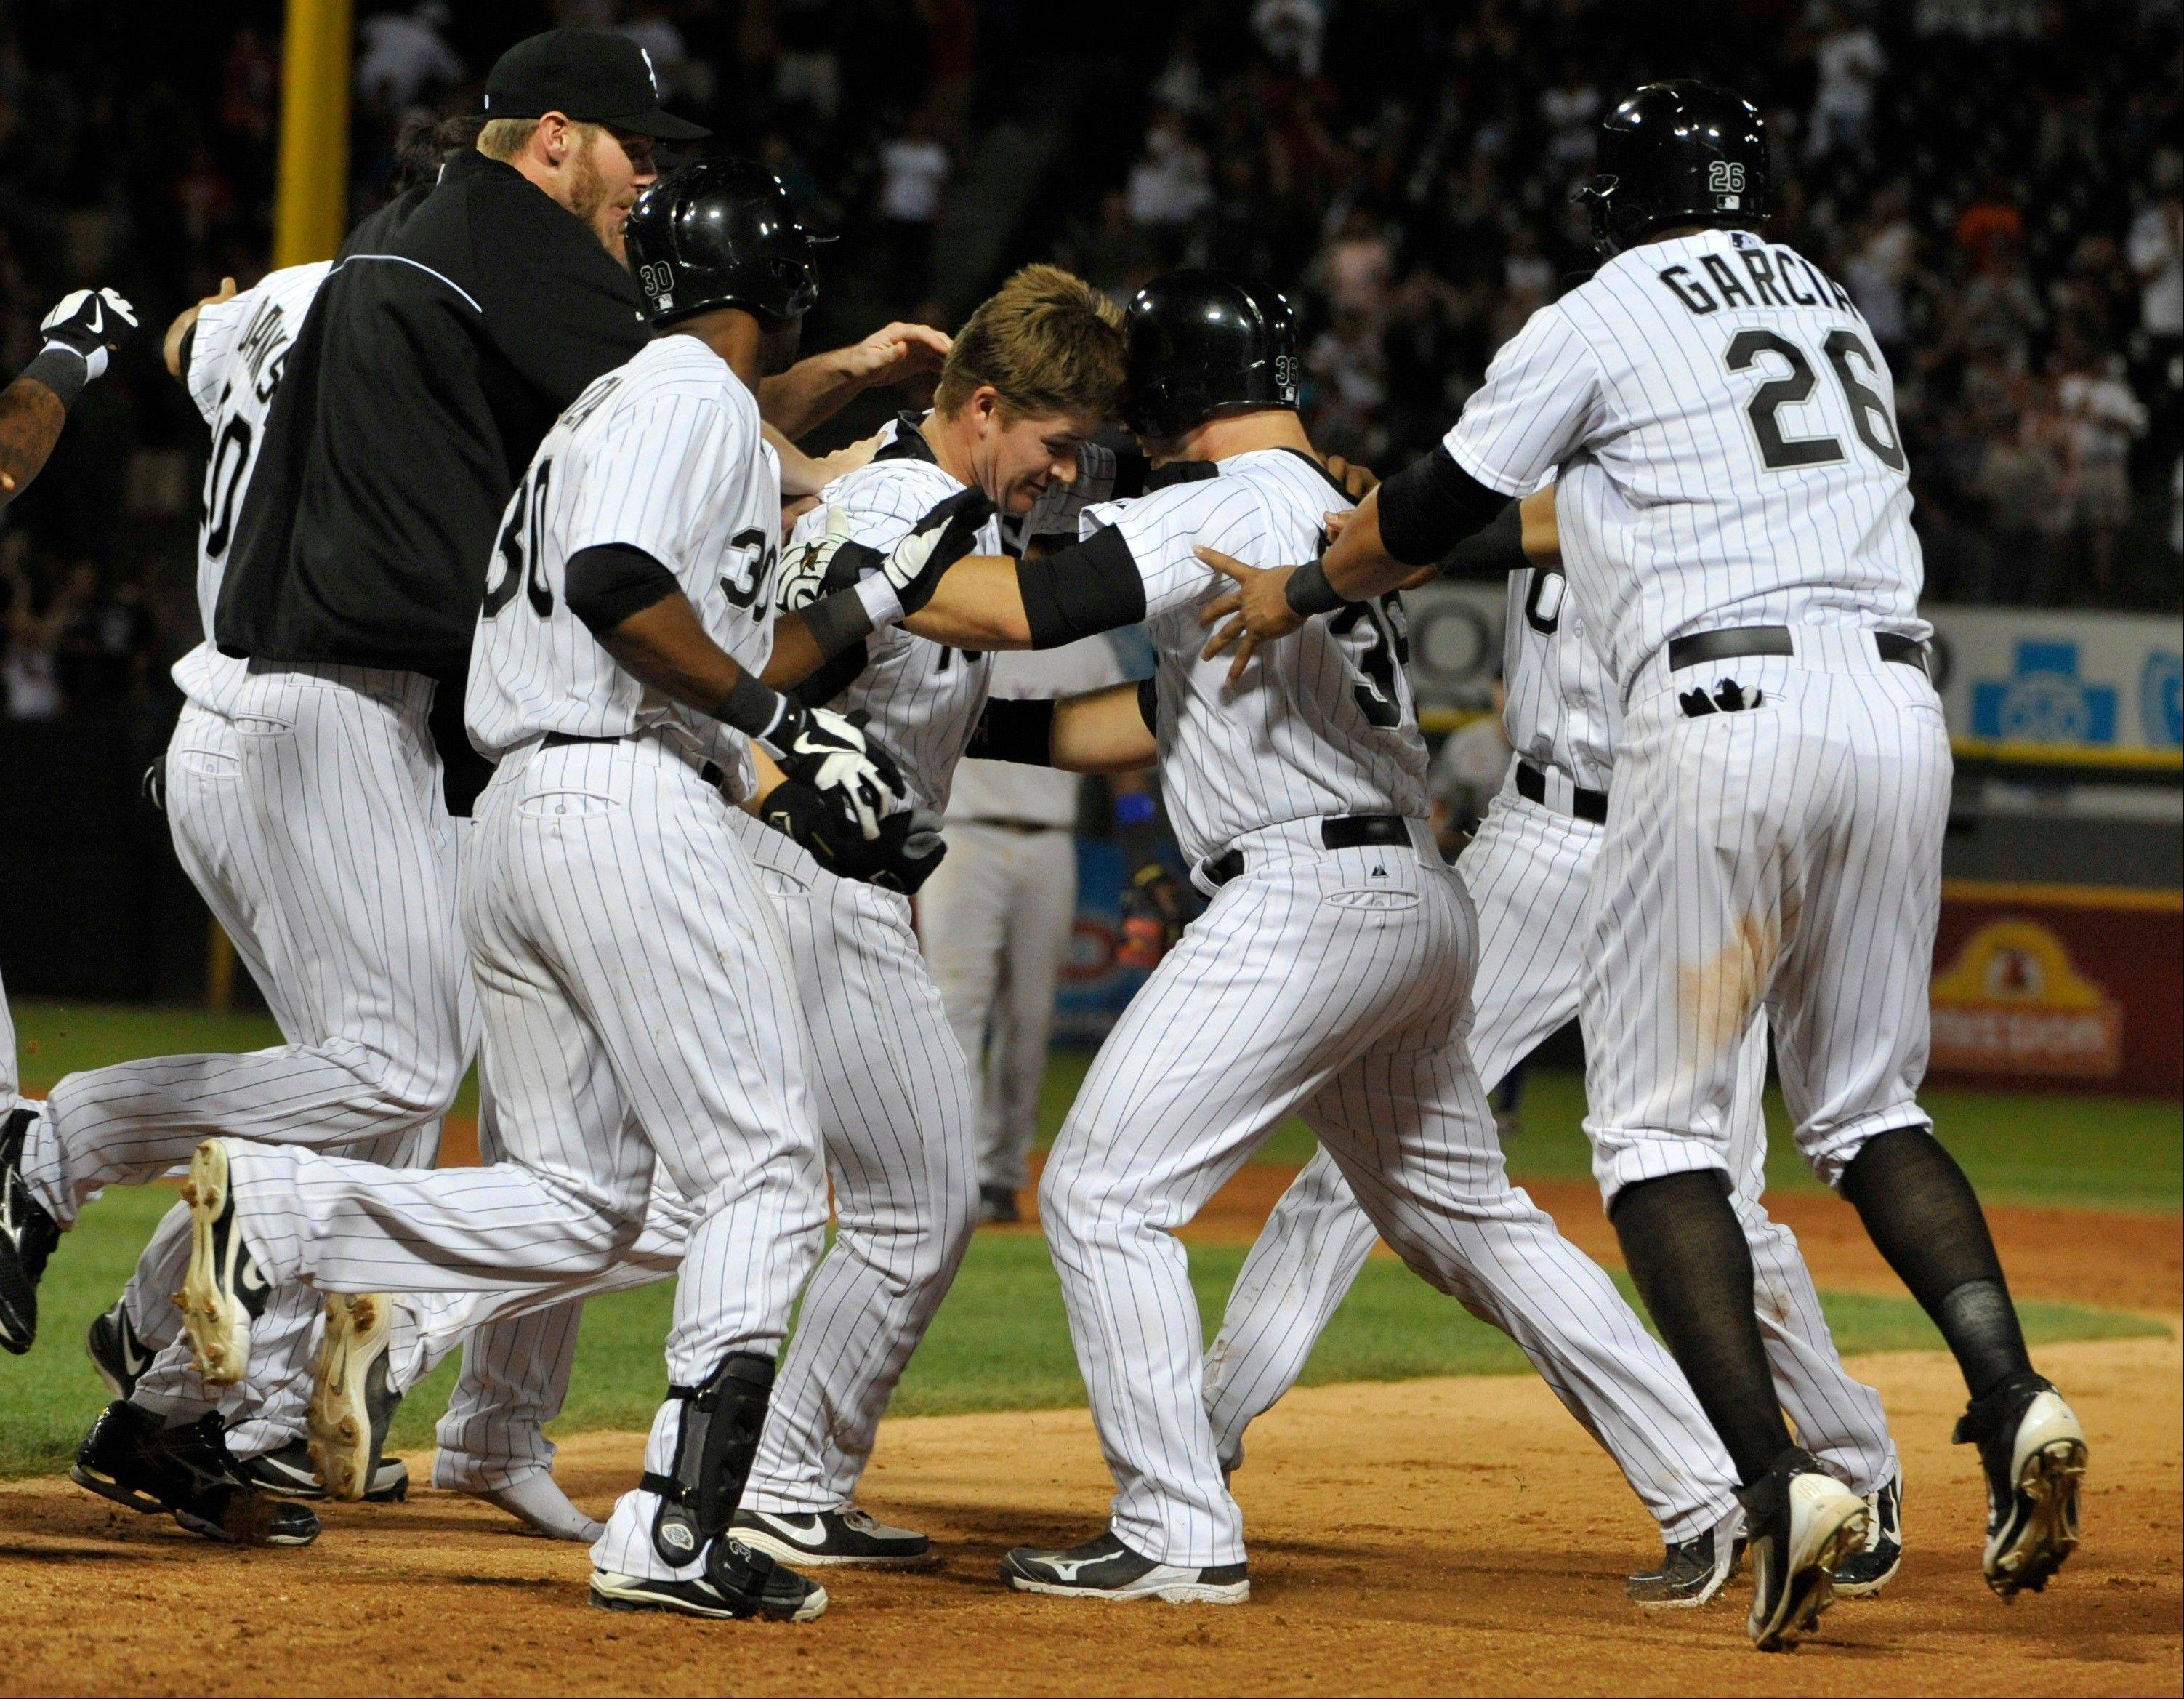 Josh Phegley, middle, is swarmed by his White Sox teammates after getting the game-winning hit Saturday night against the Rangers.